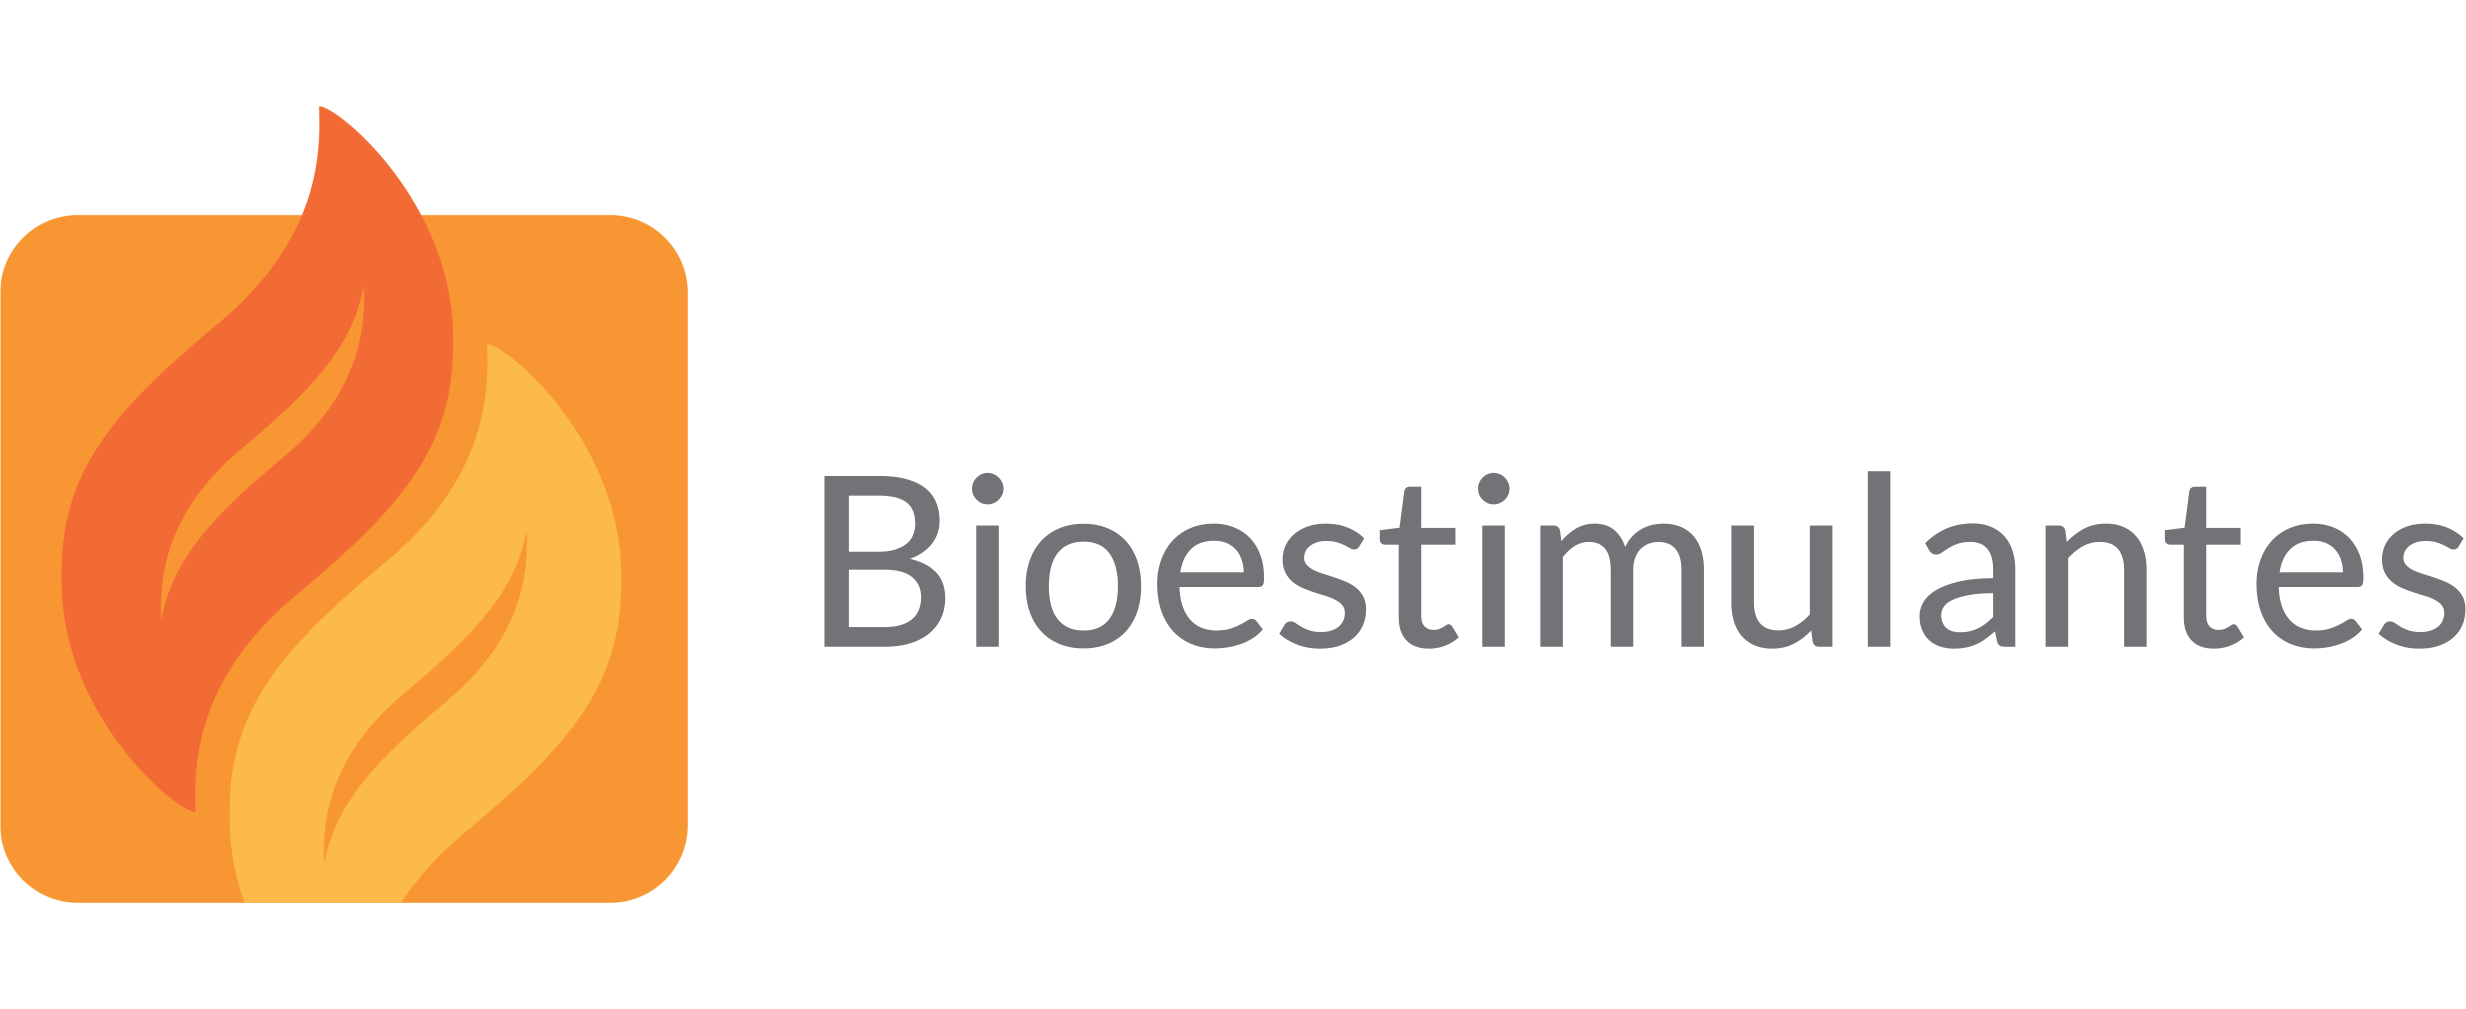 Icone da Categoria - Bioestimulantes